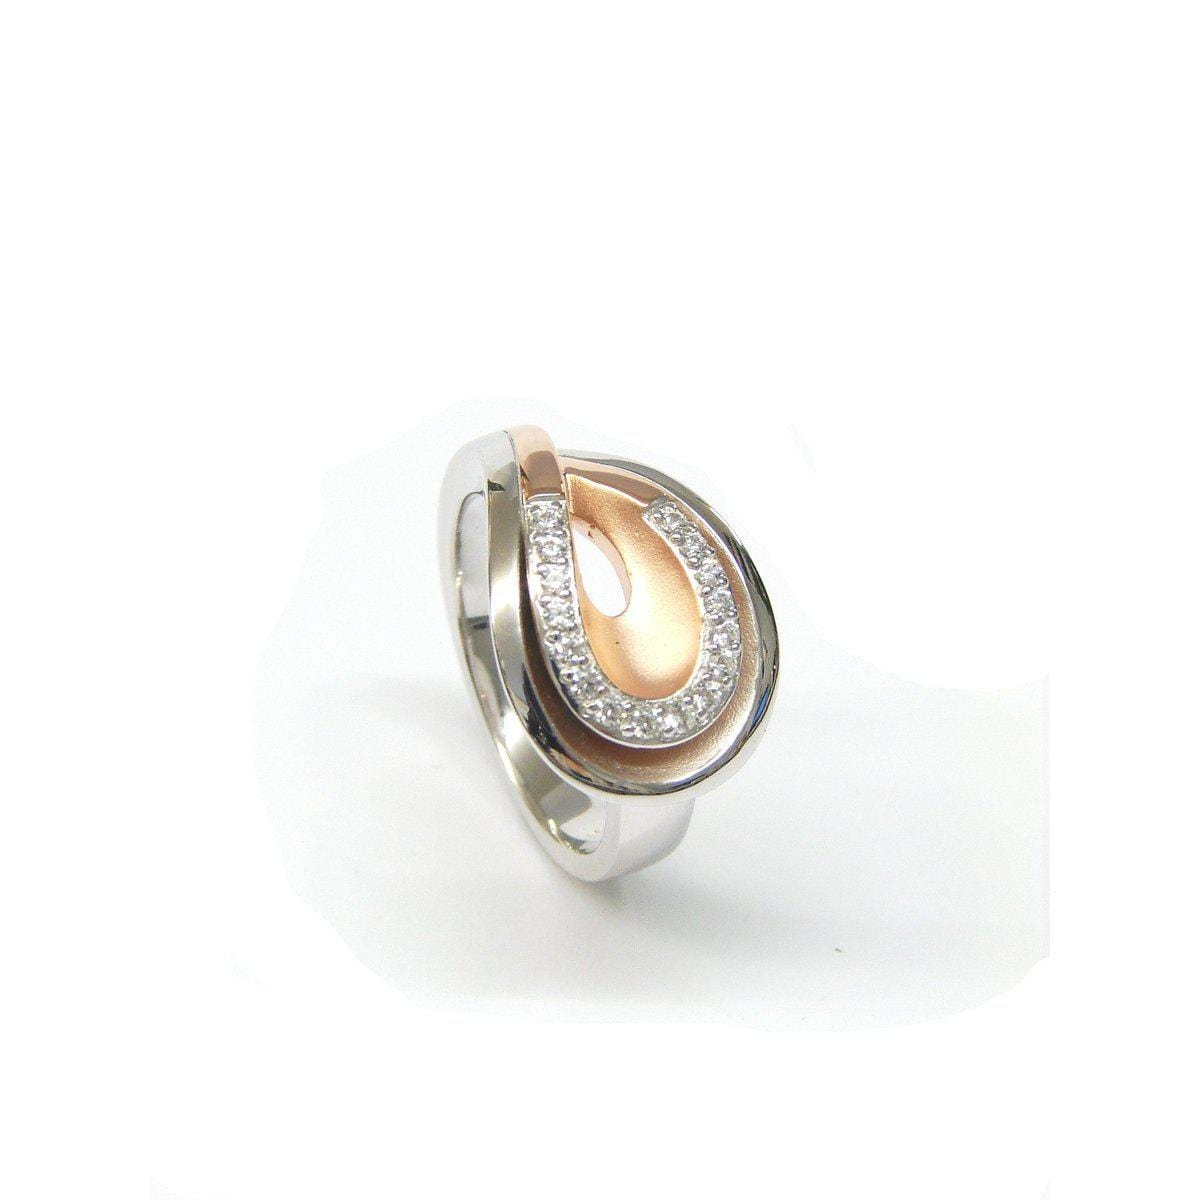 Rose Gold Plated Sterling Silver White Sapphire Ring - 42/84806-3-Breuning-Renee Taylor Gallery